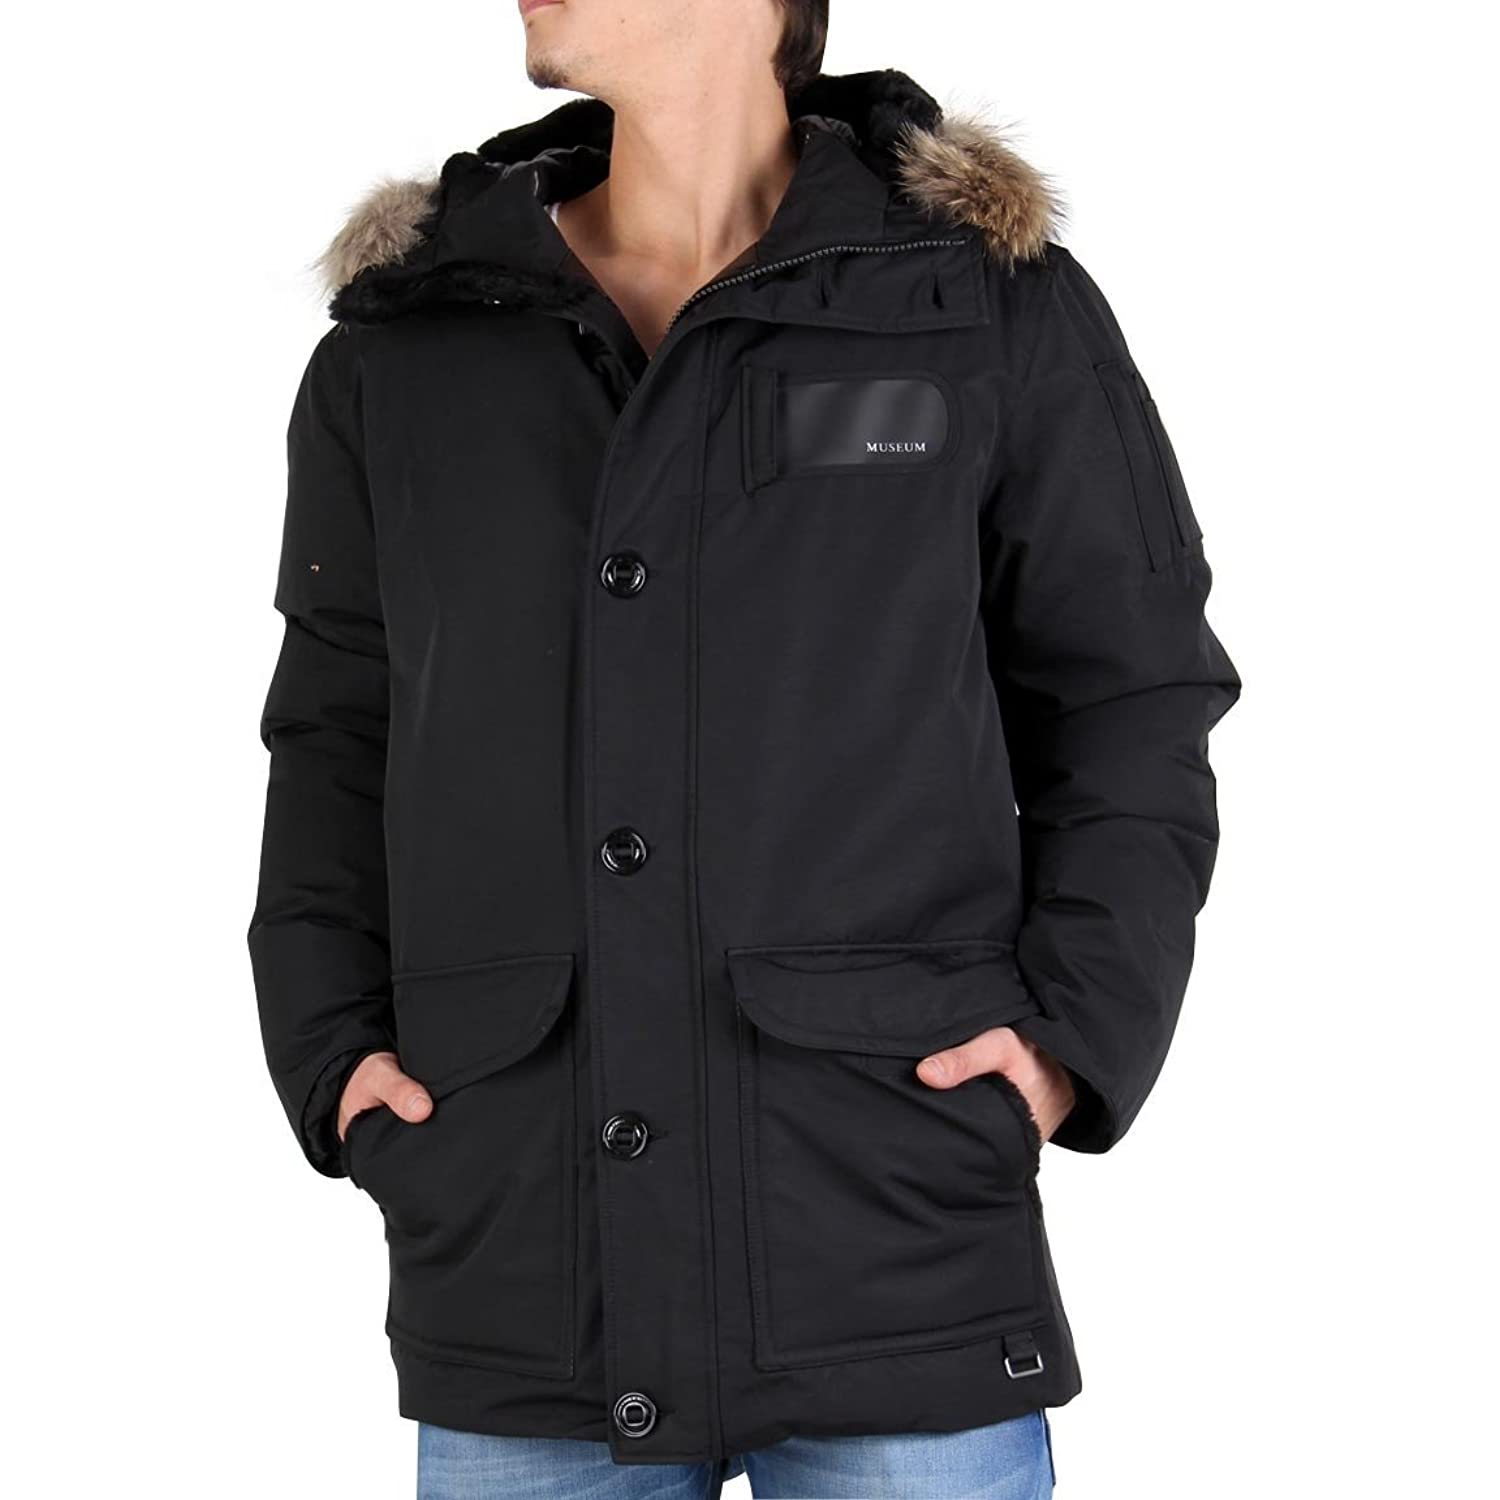 museum herren winter daunenparka polar black 19329 online bestellen. Black Bedroom Furniture Sets. Home Design Ideas